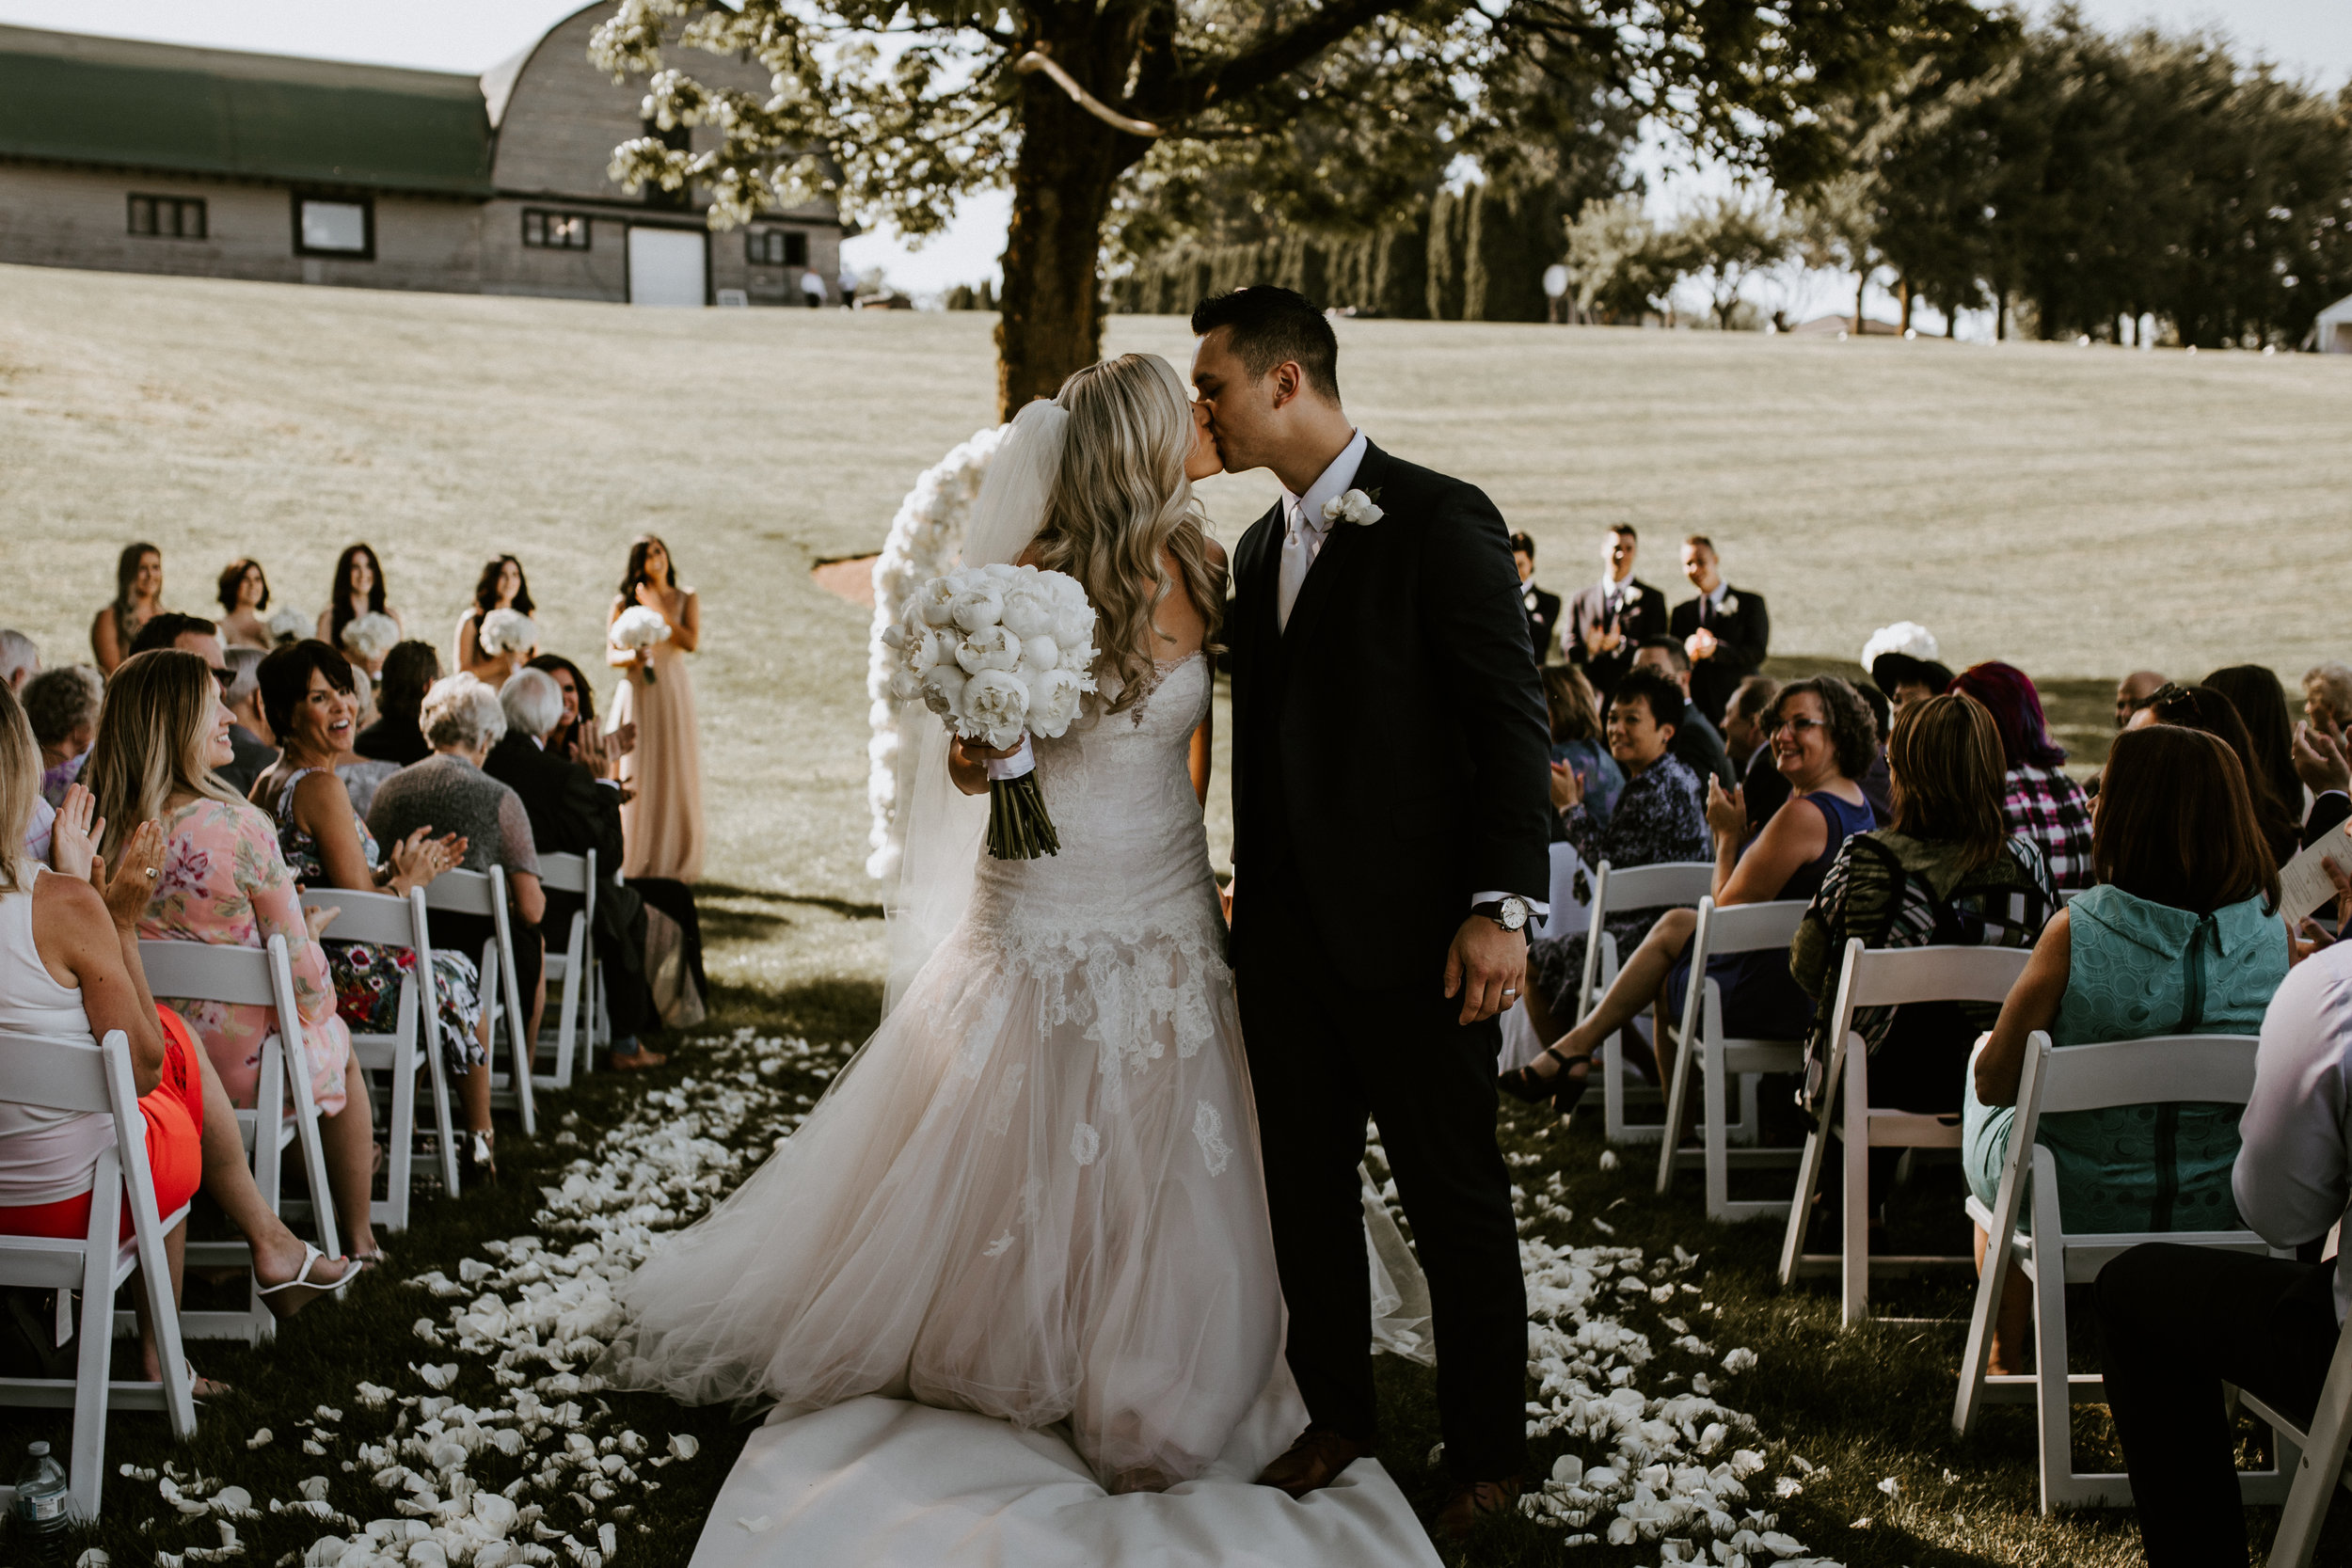 A wedding ceremony on the lawn at Mount Lehman Winery